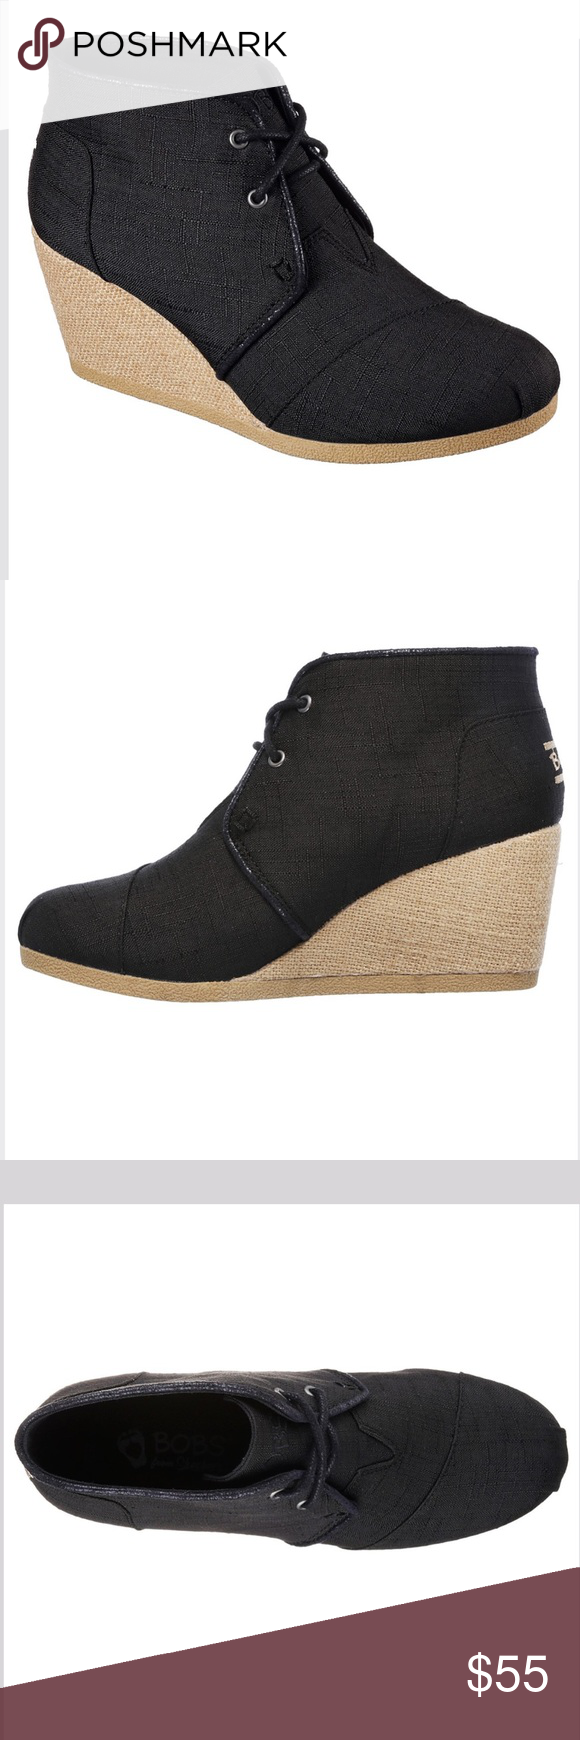 Bob's High Note Wedge Heels Put a lift on your gorgeous